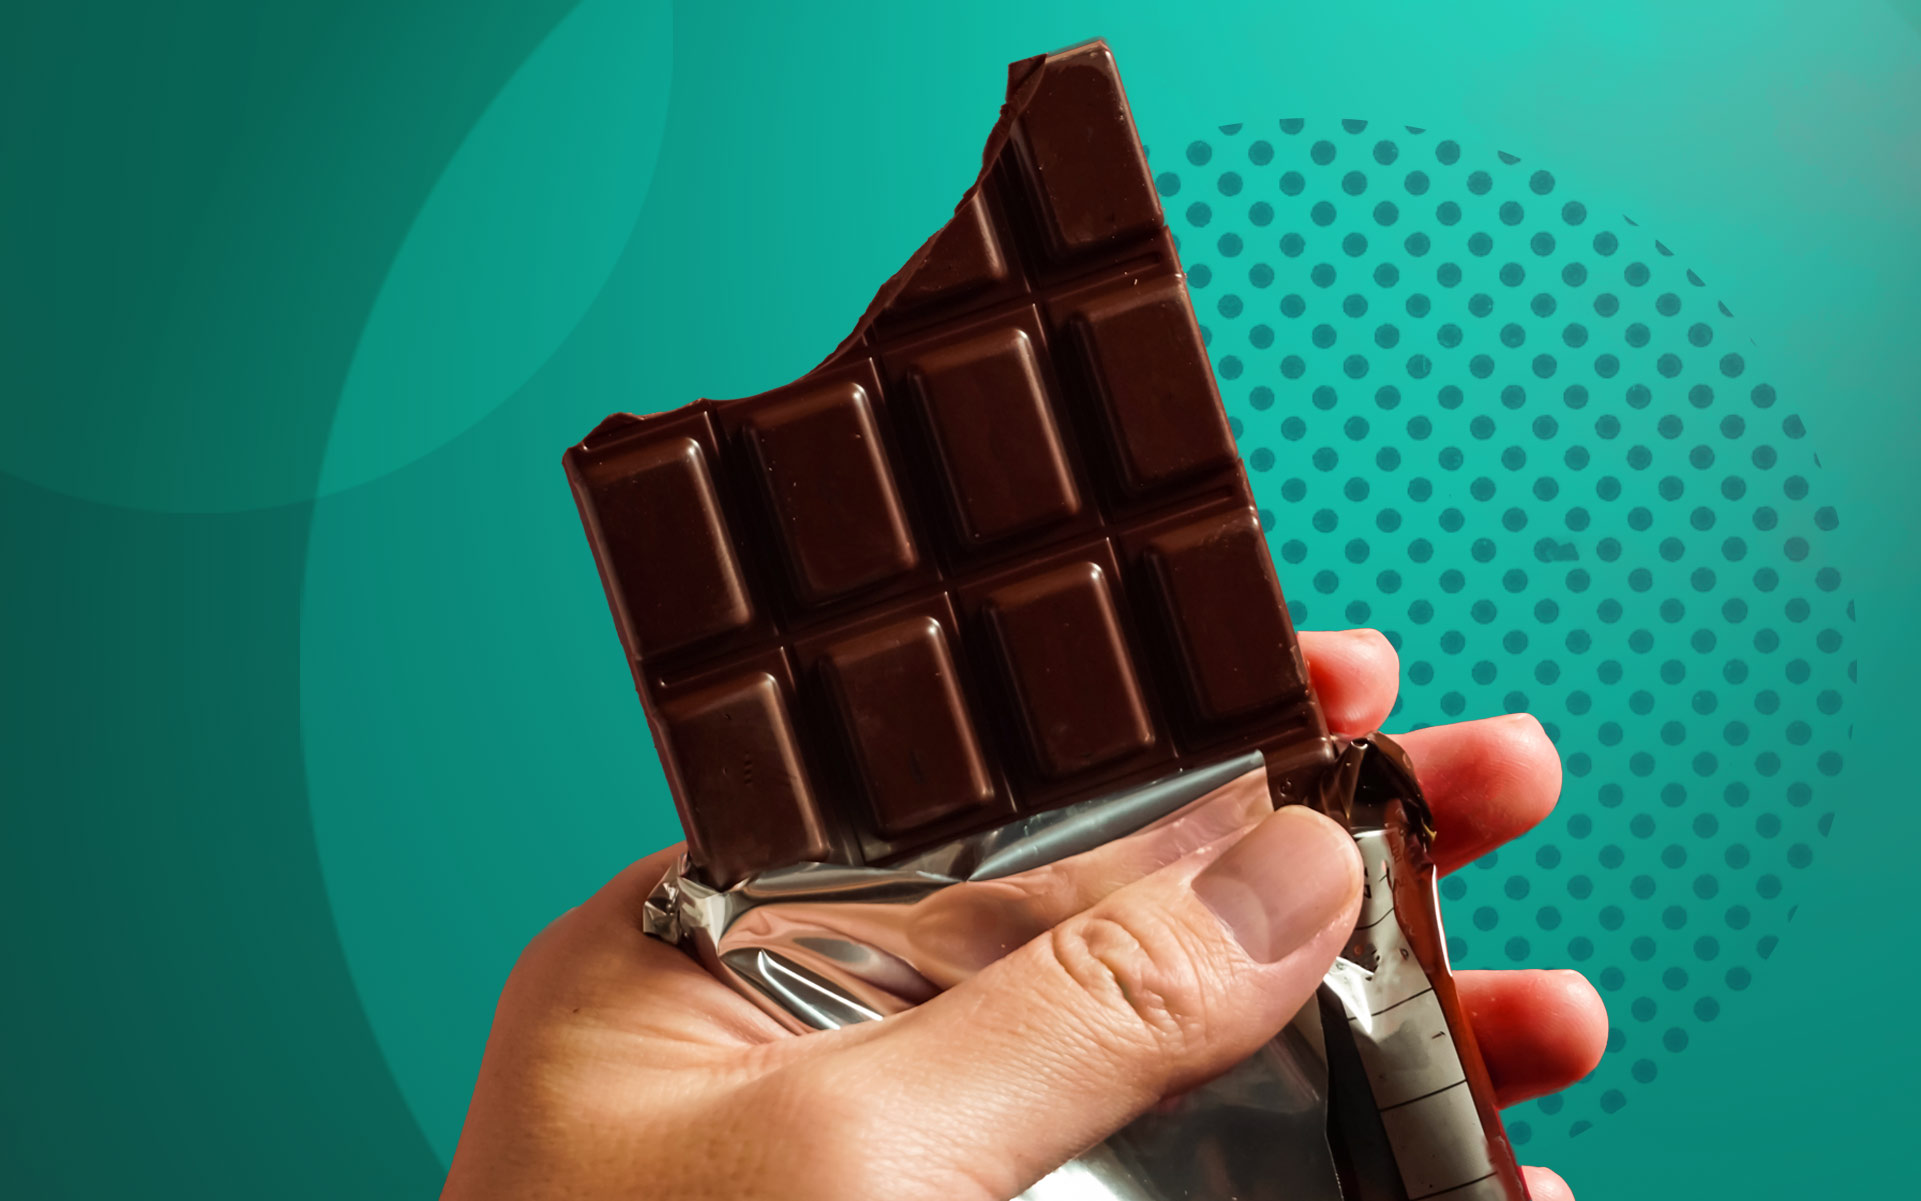 cannabis edibles guide; hand holding chocolate bar